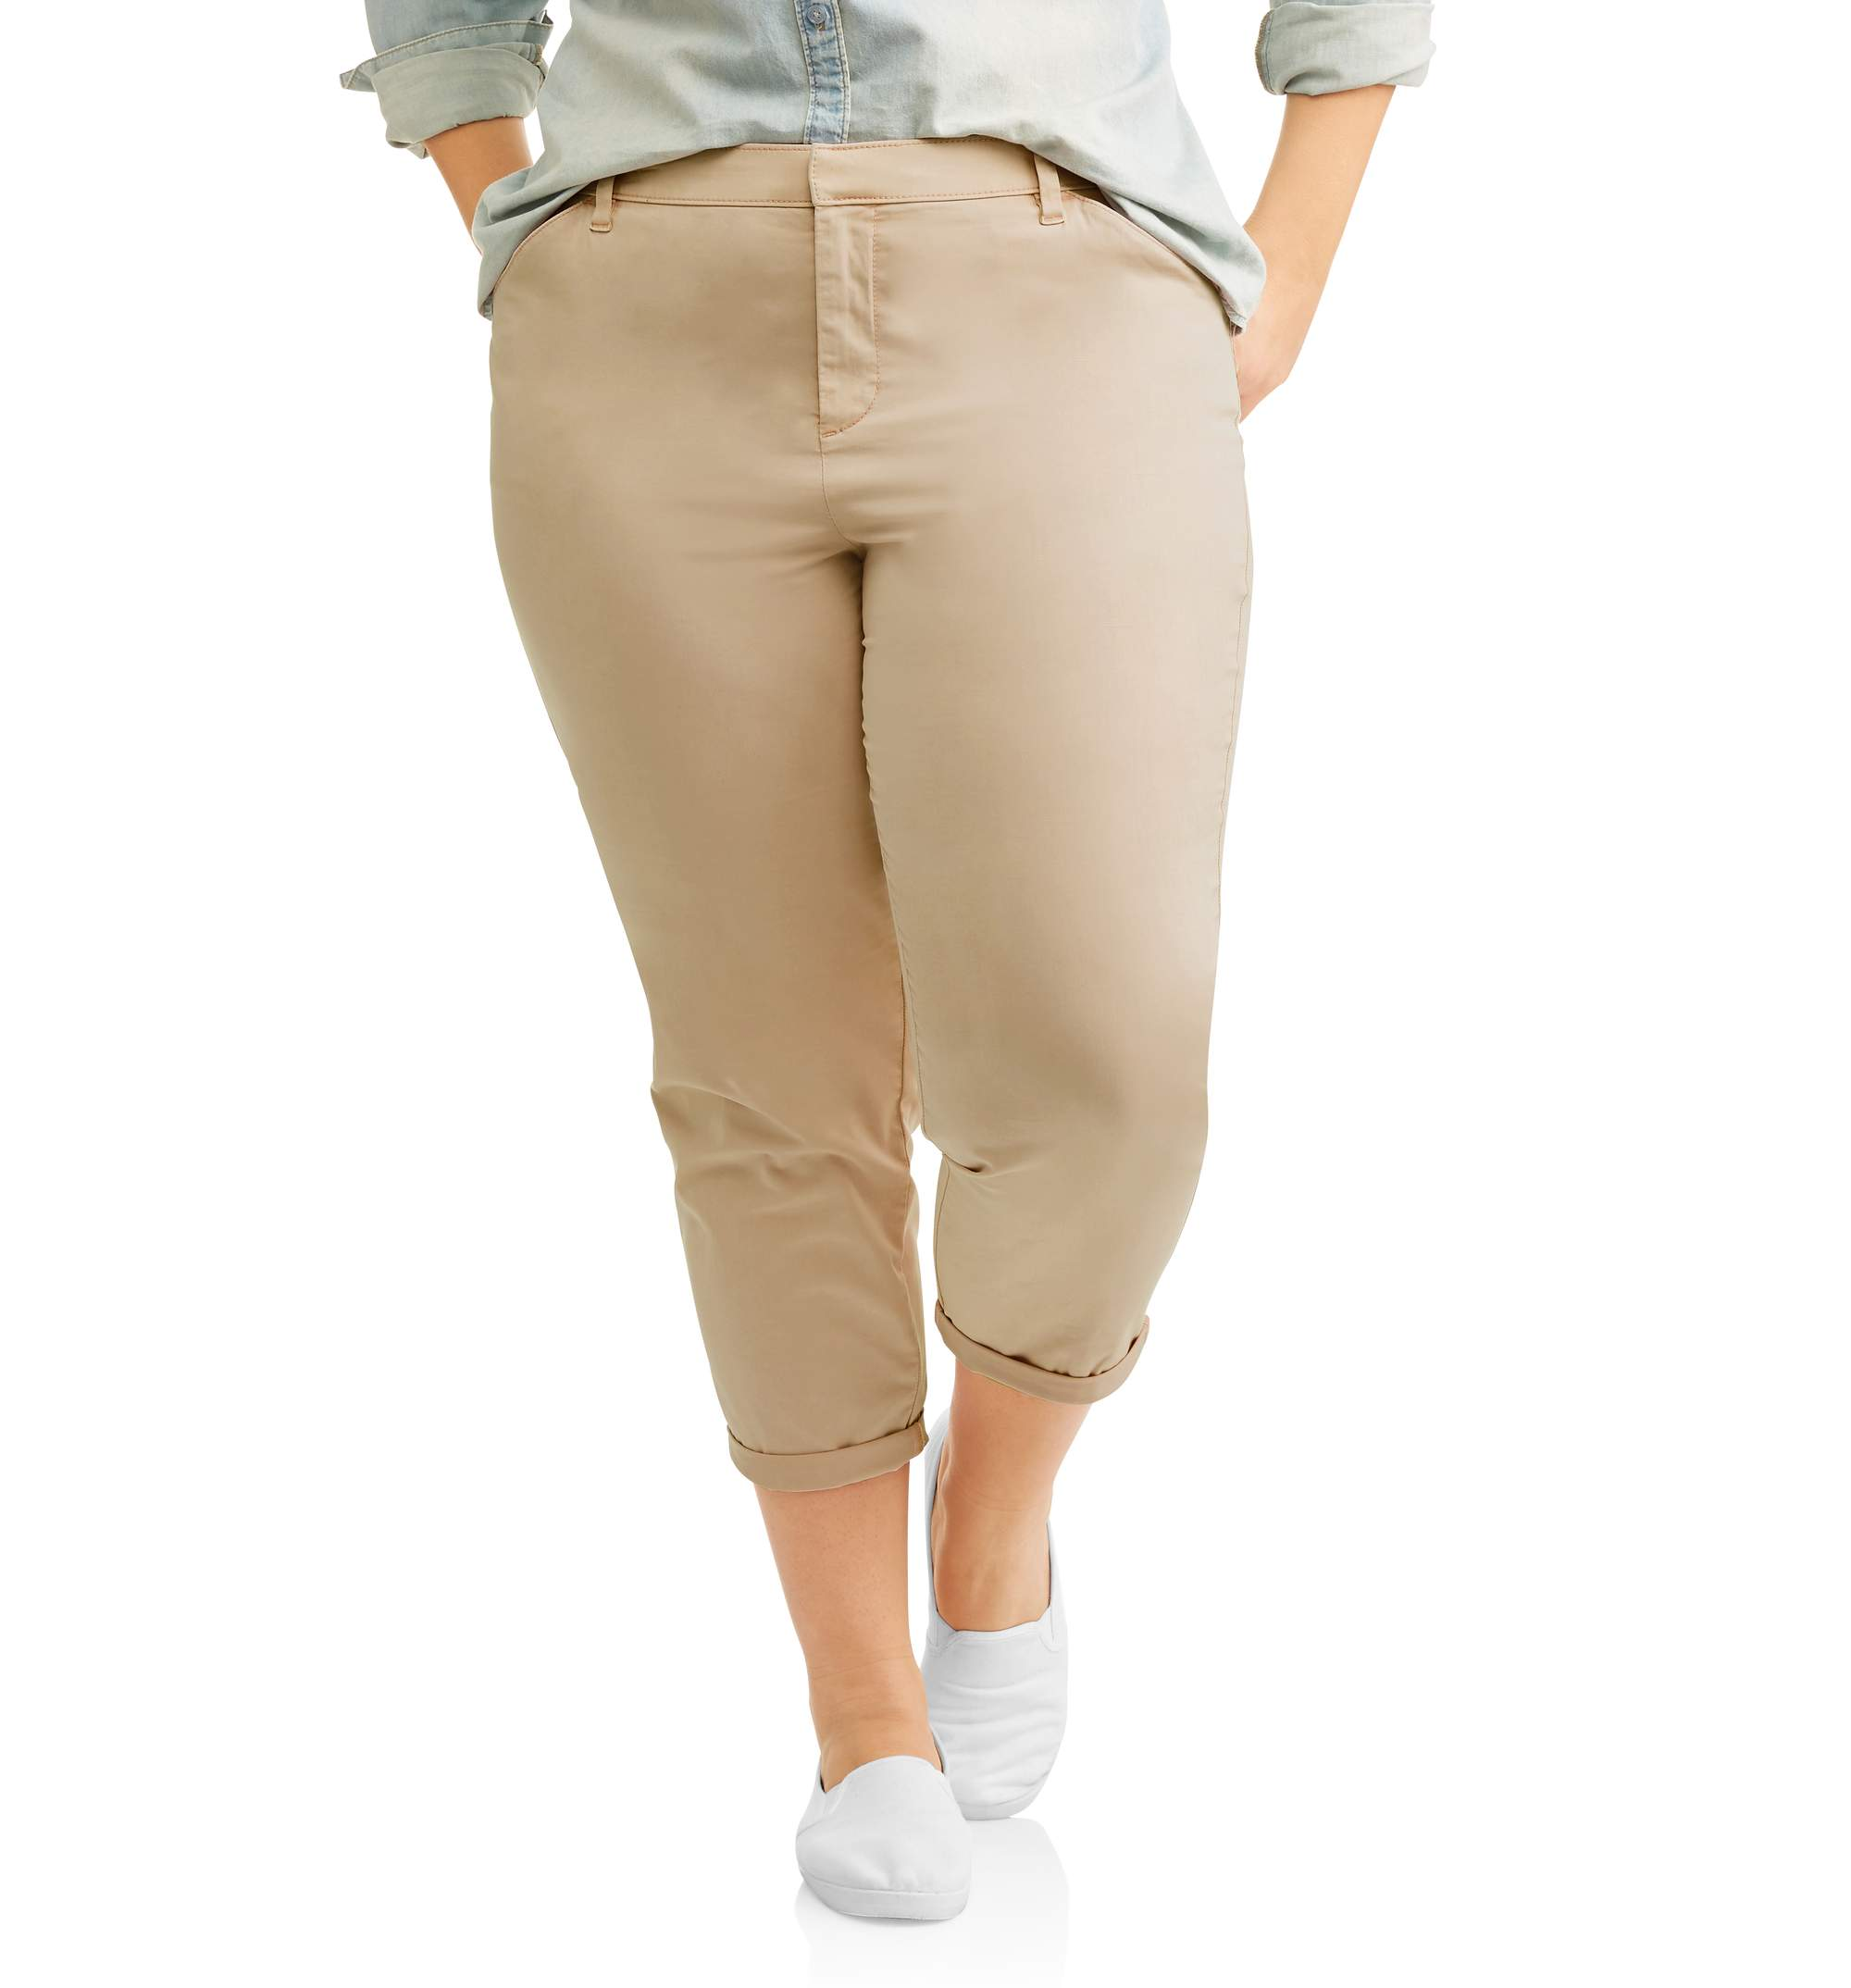 Terra & Sky Women's Plus Brushed Satin Cropped Chino Pants by Generic